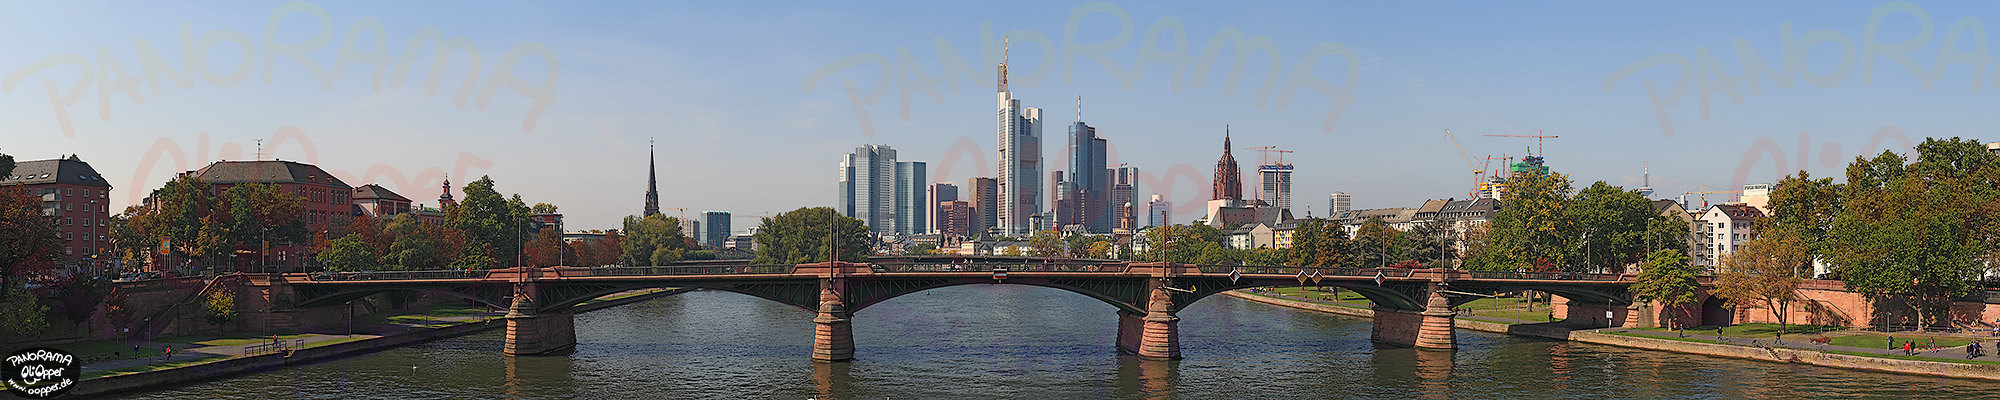 Panorama Frankfurt - Skyline am Tag - p308 - (c) by Oliver Opper